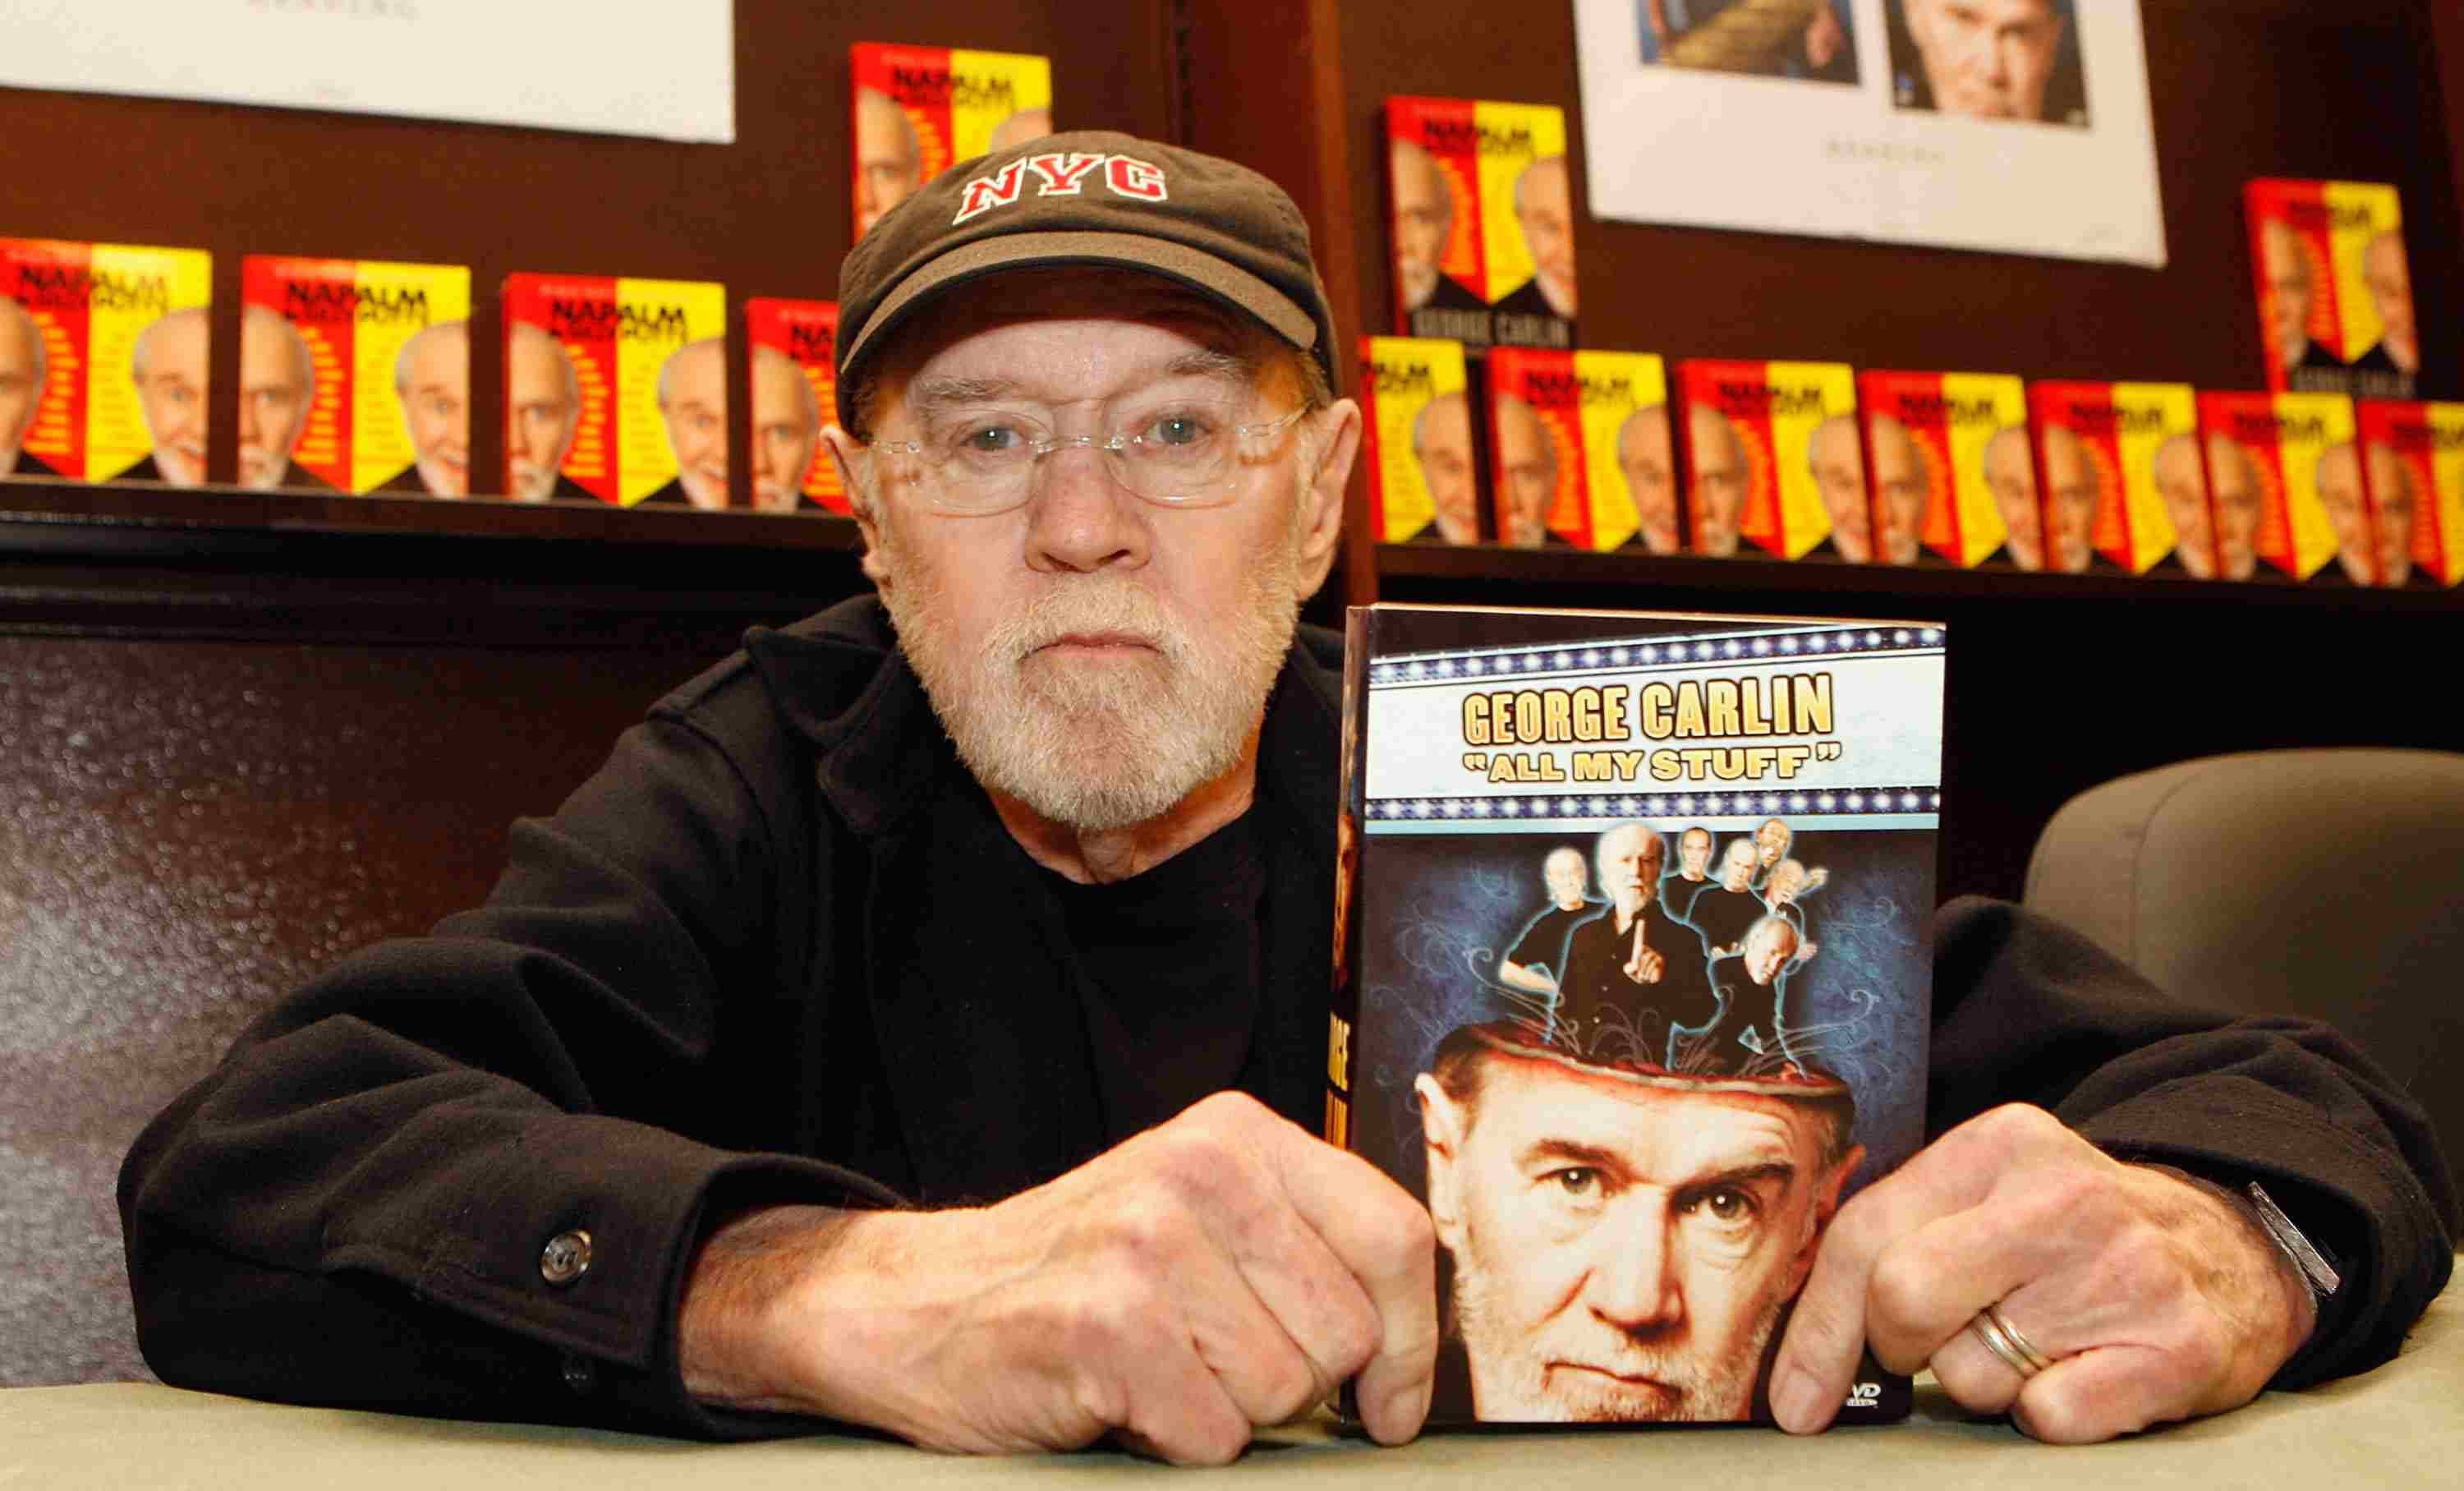 George Carlin Signs Copies Of His New Book 'All My Stuff'